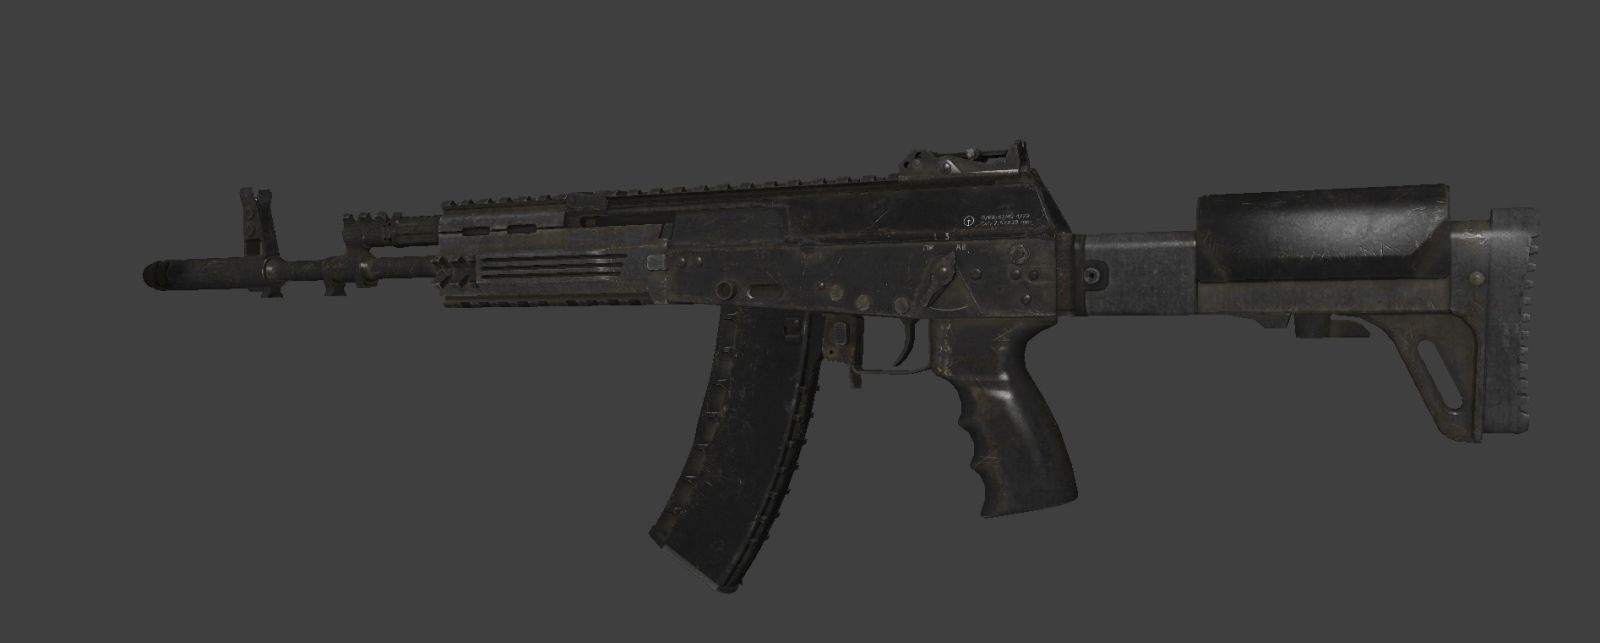 CoD Ghosts AK12